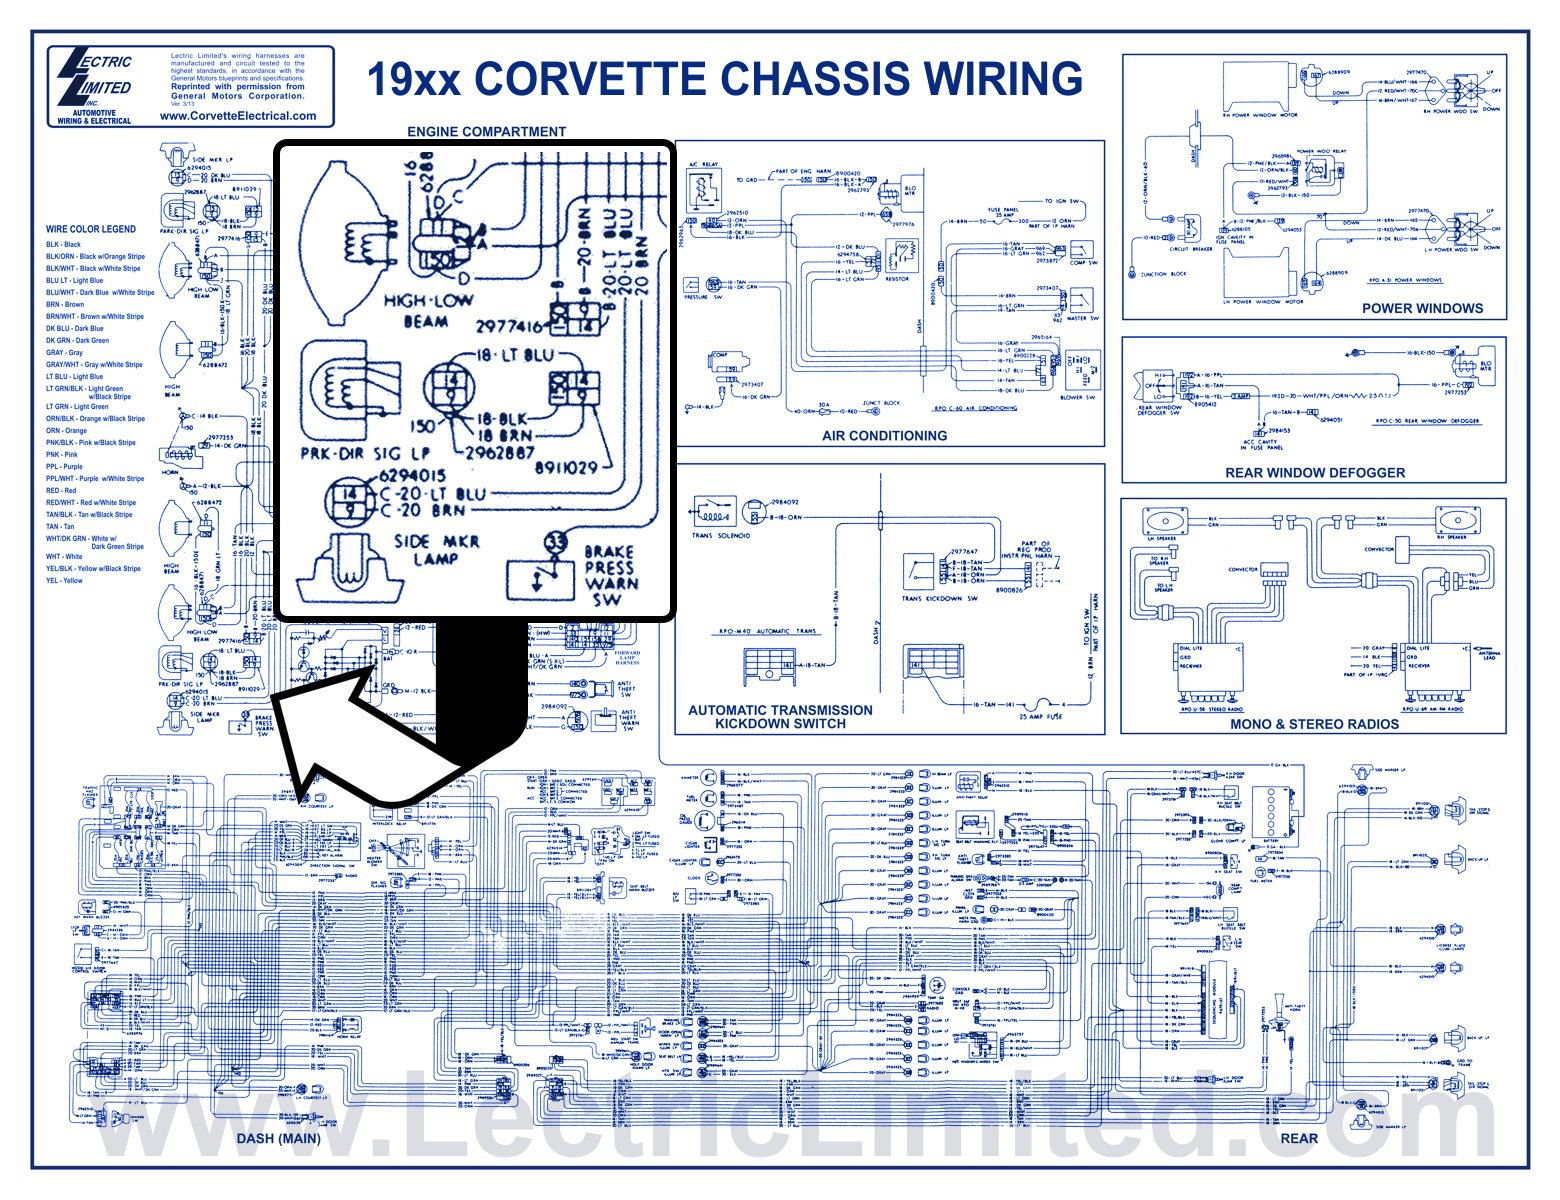 1978 Corvette Wiring Harness Worksheet And Diagram 78 72 Another Diagrams U2022 Rh Benpaterson Co Uk